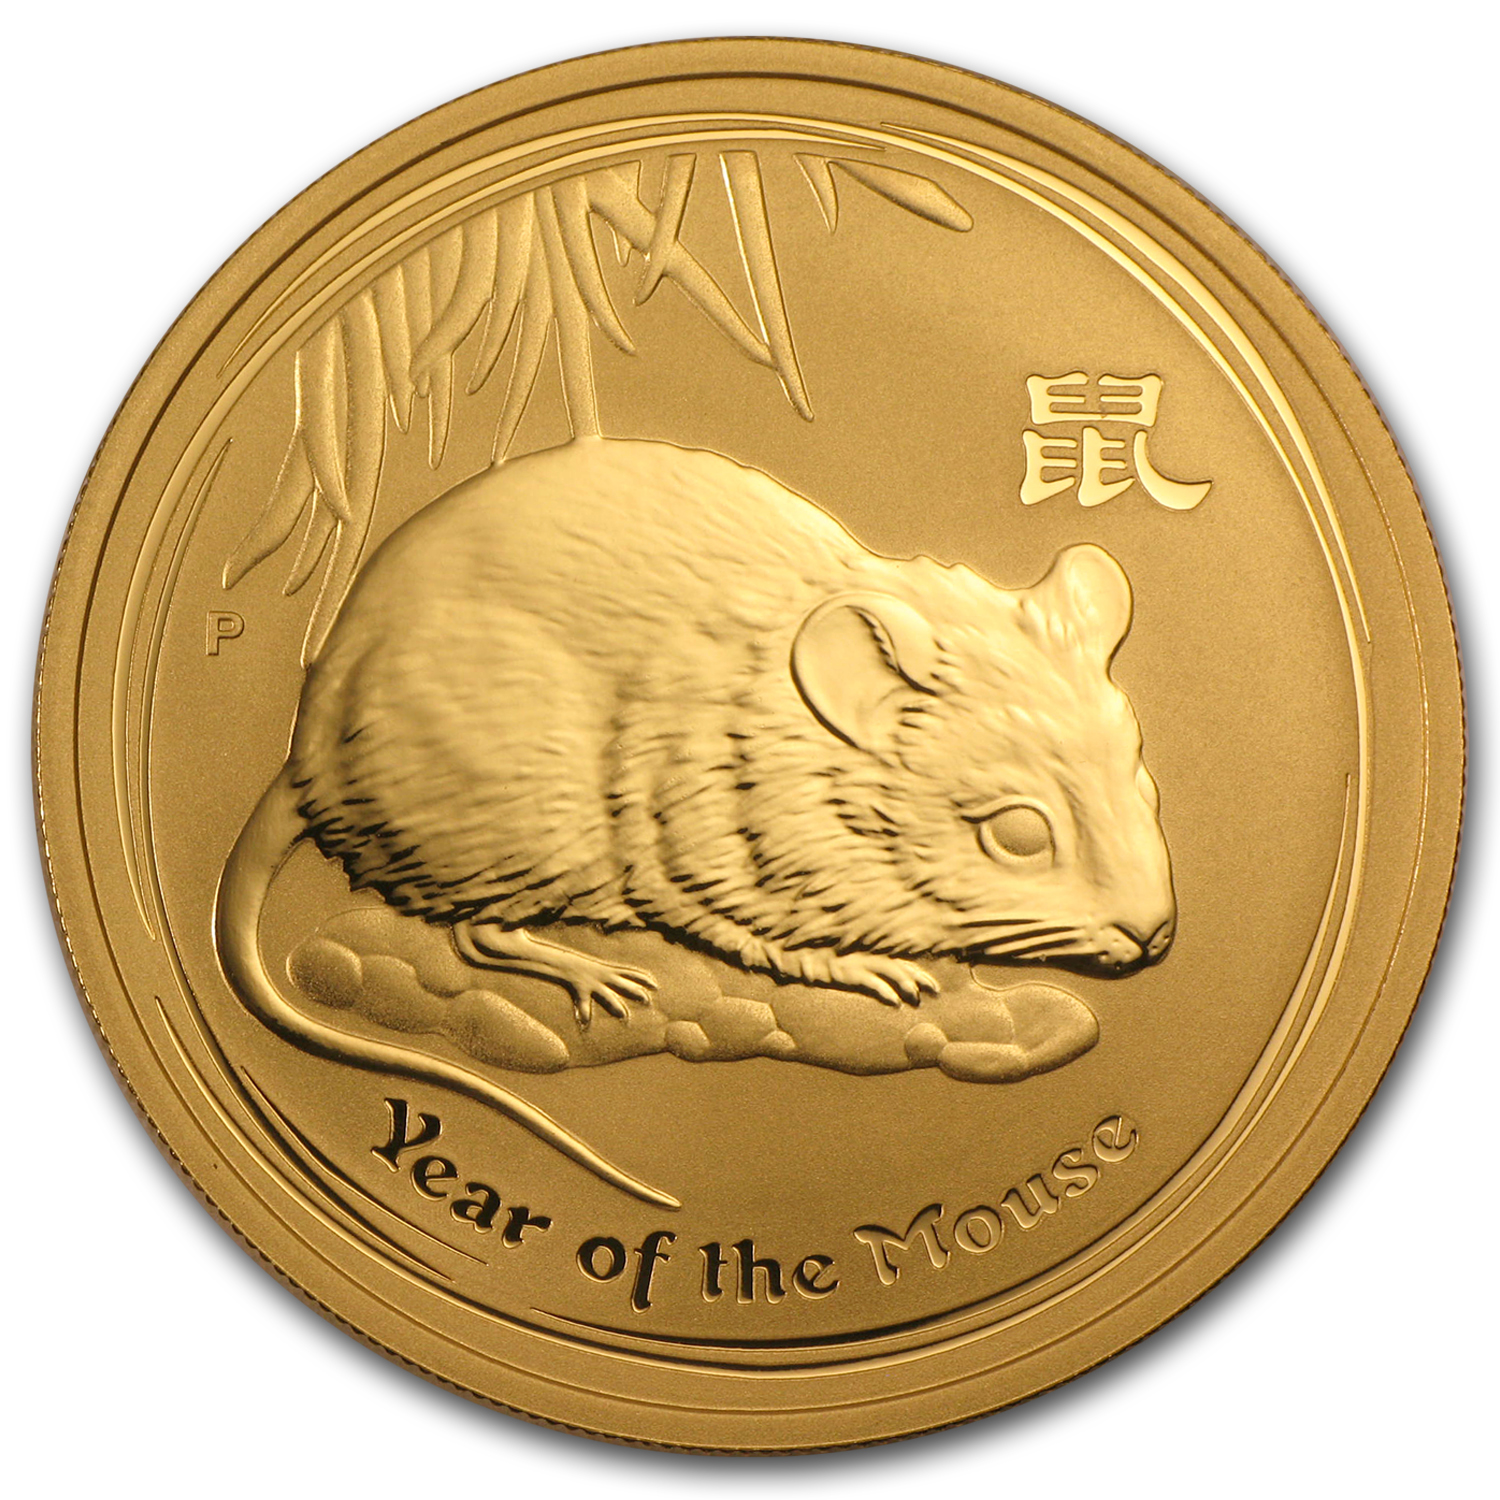 2008 Australia 1 oz Gold Lunar Mouse BU (Series II)